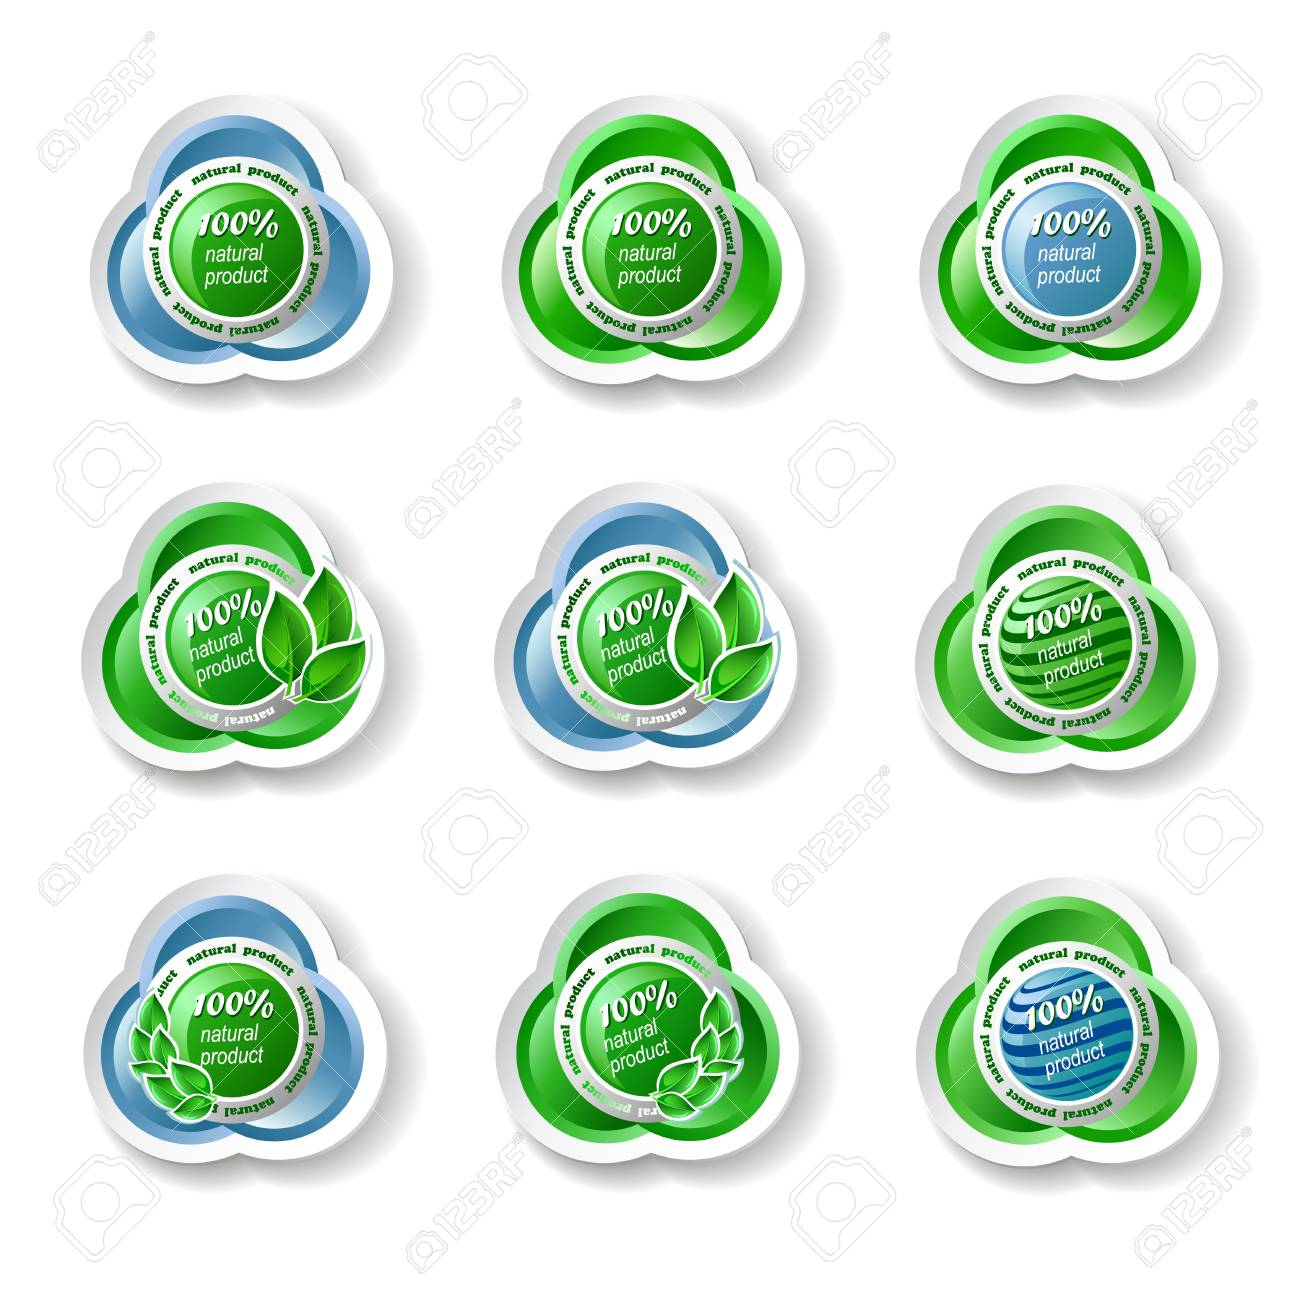 Set of ecology icons on the white background Stock Vector - 15206385